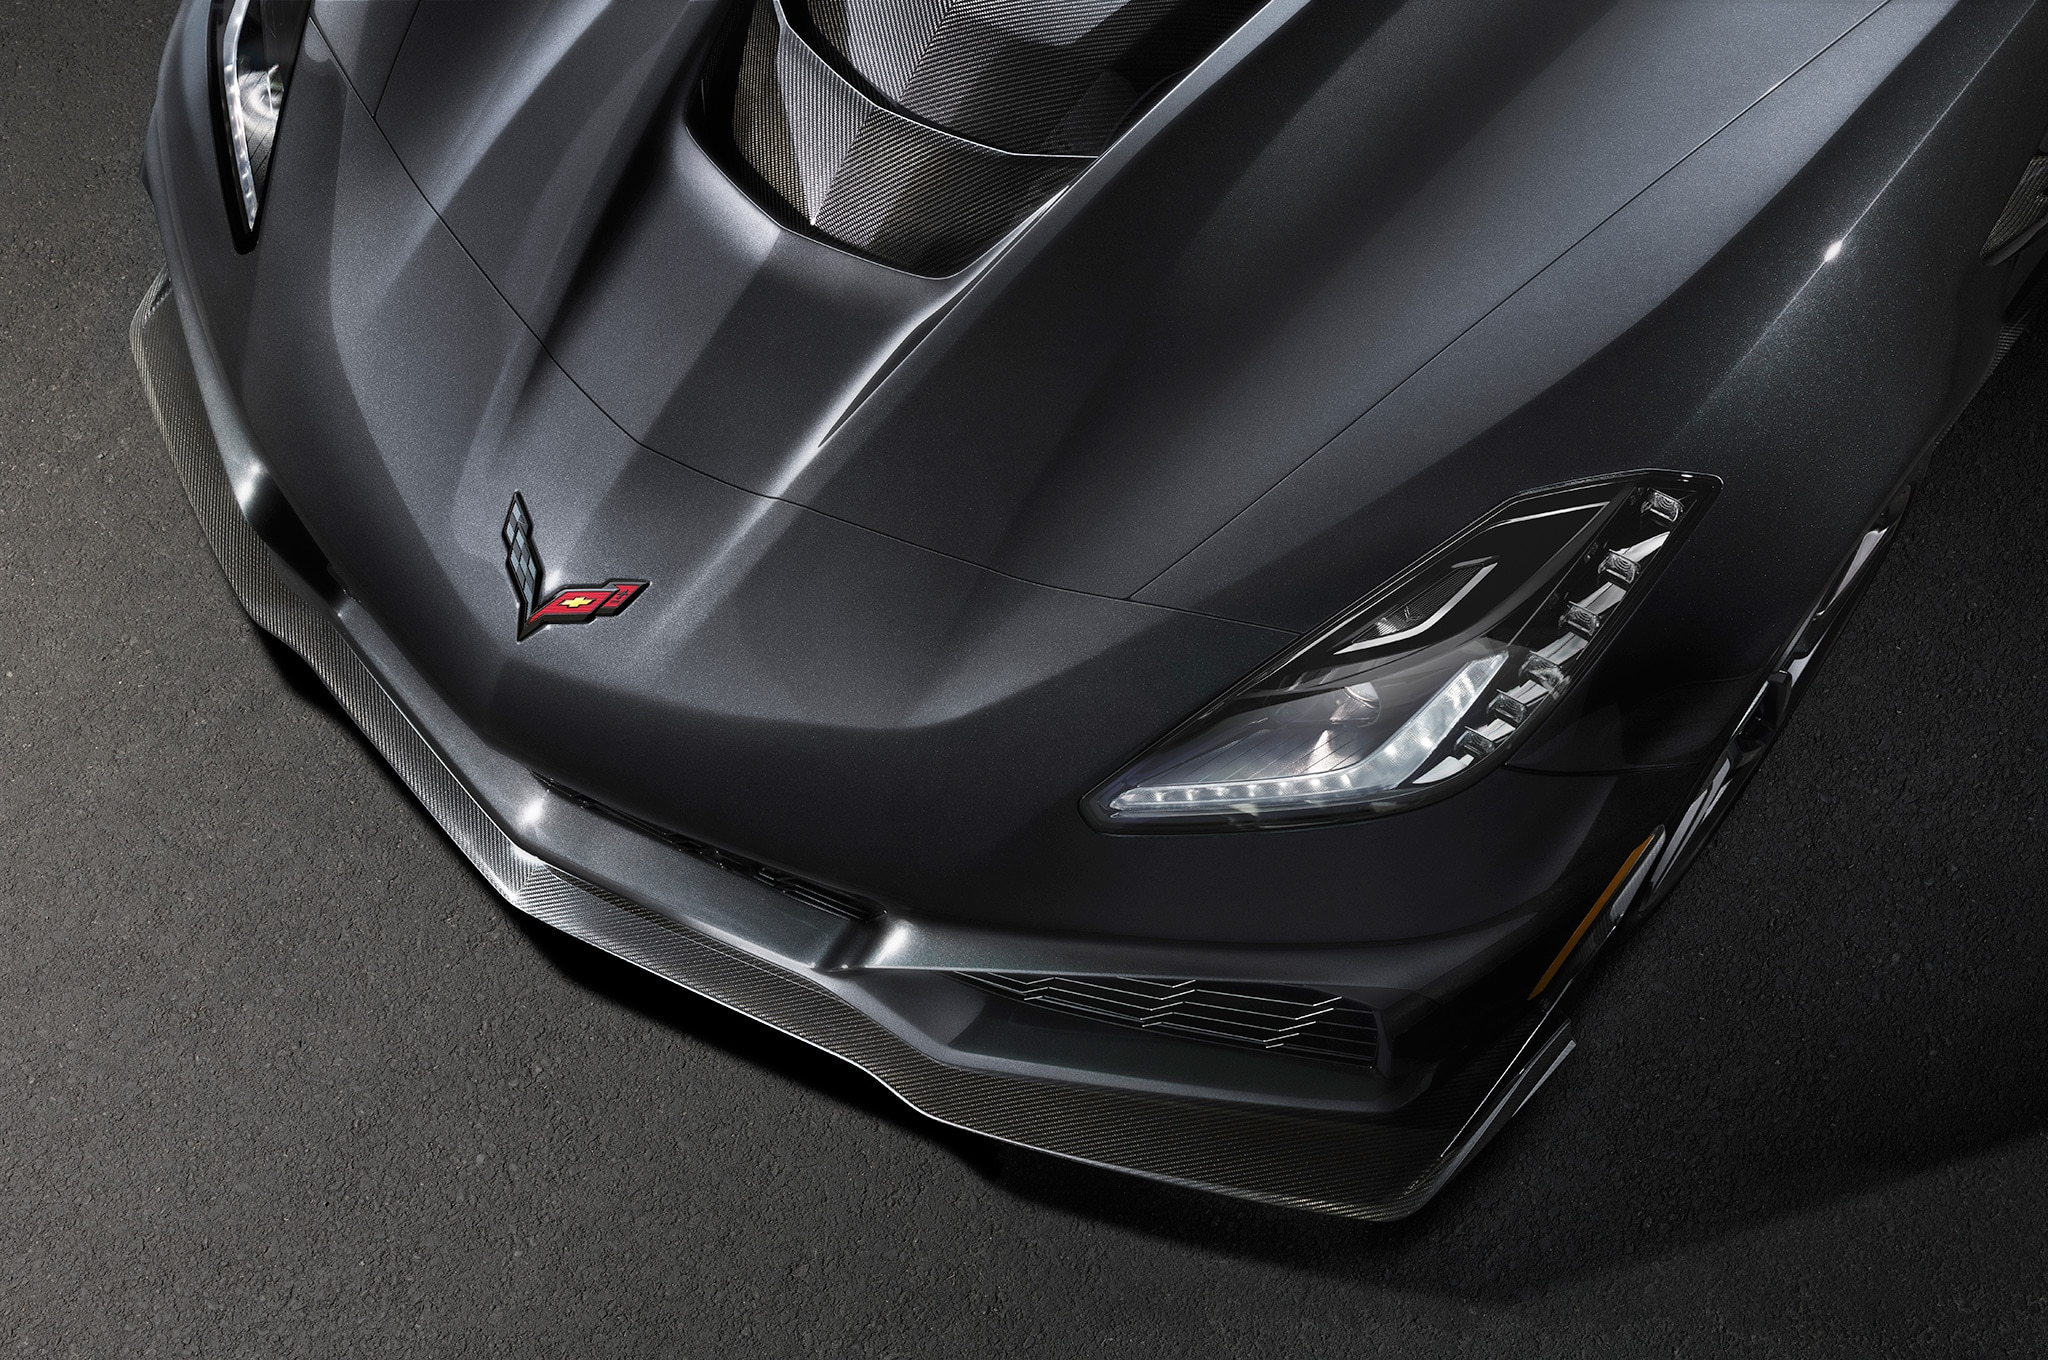 Chevrolet Unveils 2019 Corvette ZR1 with LT5 Supercharged Engine